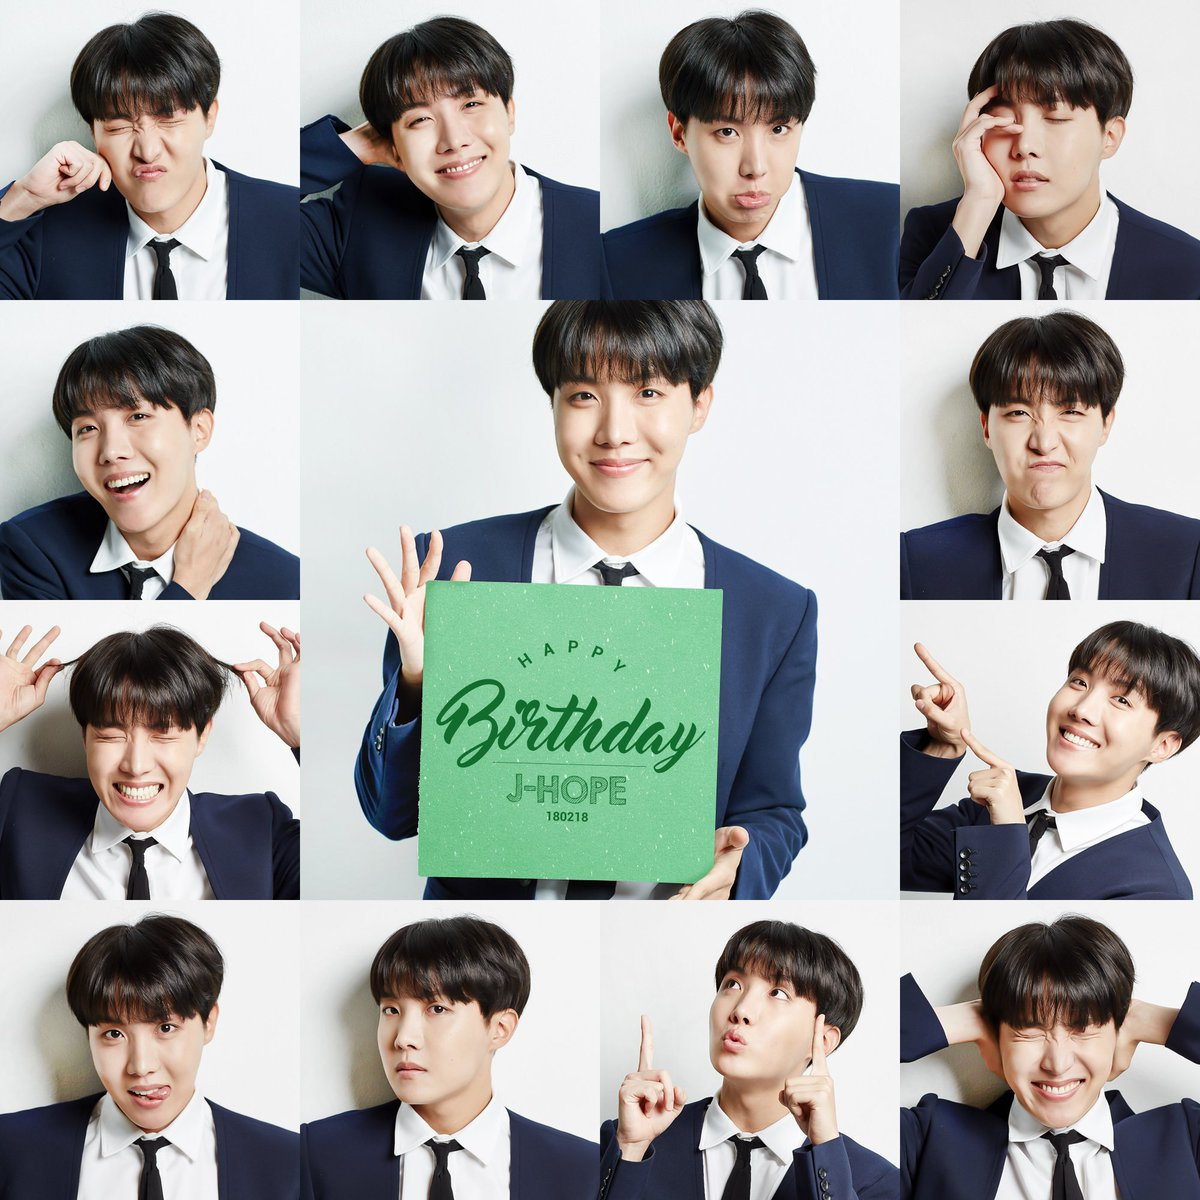 [#호비생일ㅊㅋ] 0218 HAPPY BIRTHDAY OUR REAL H...